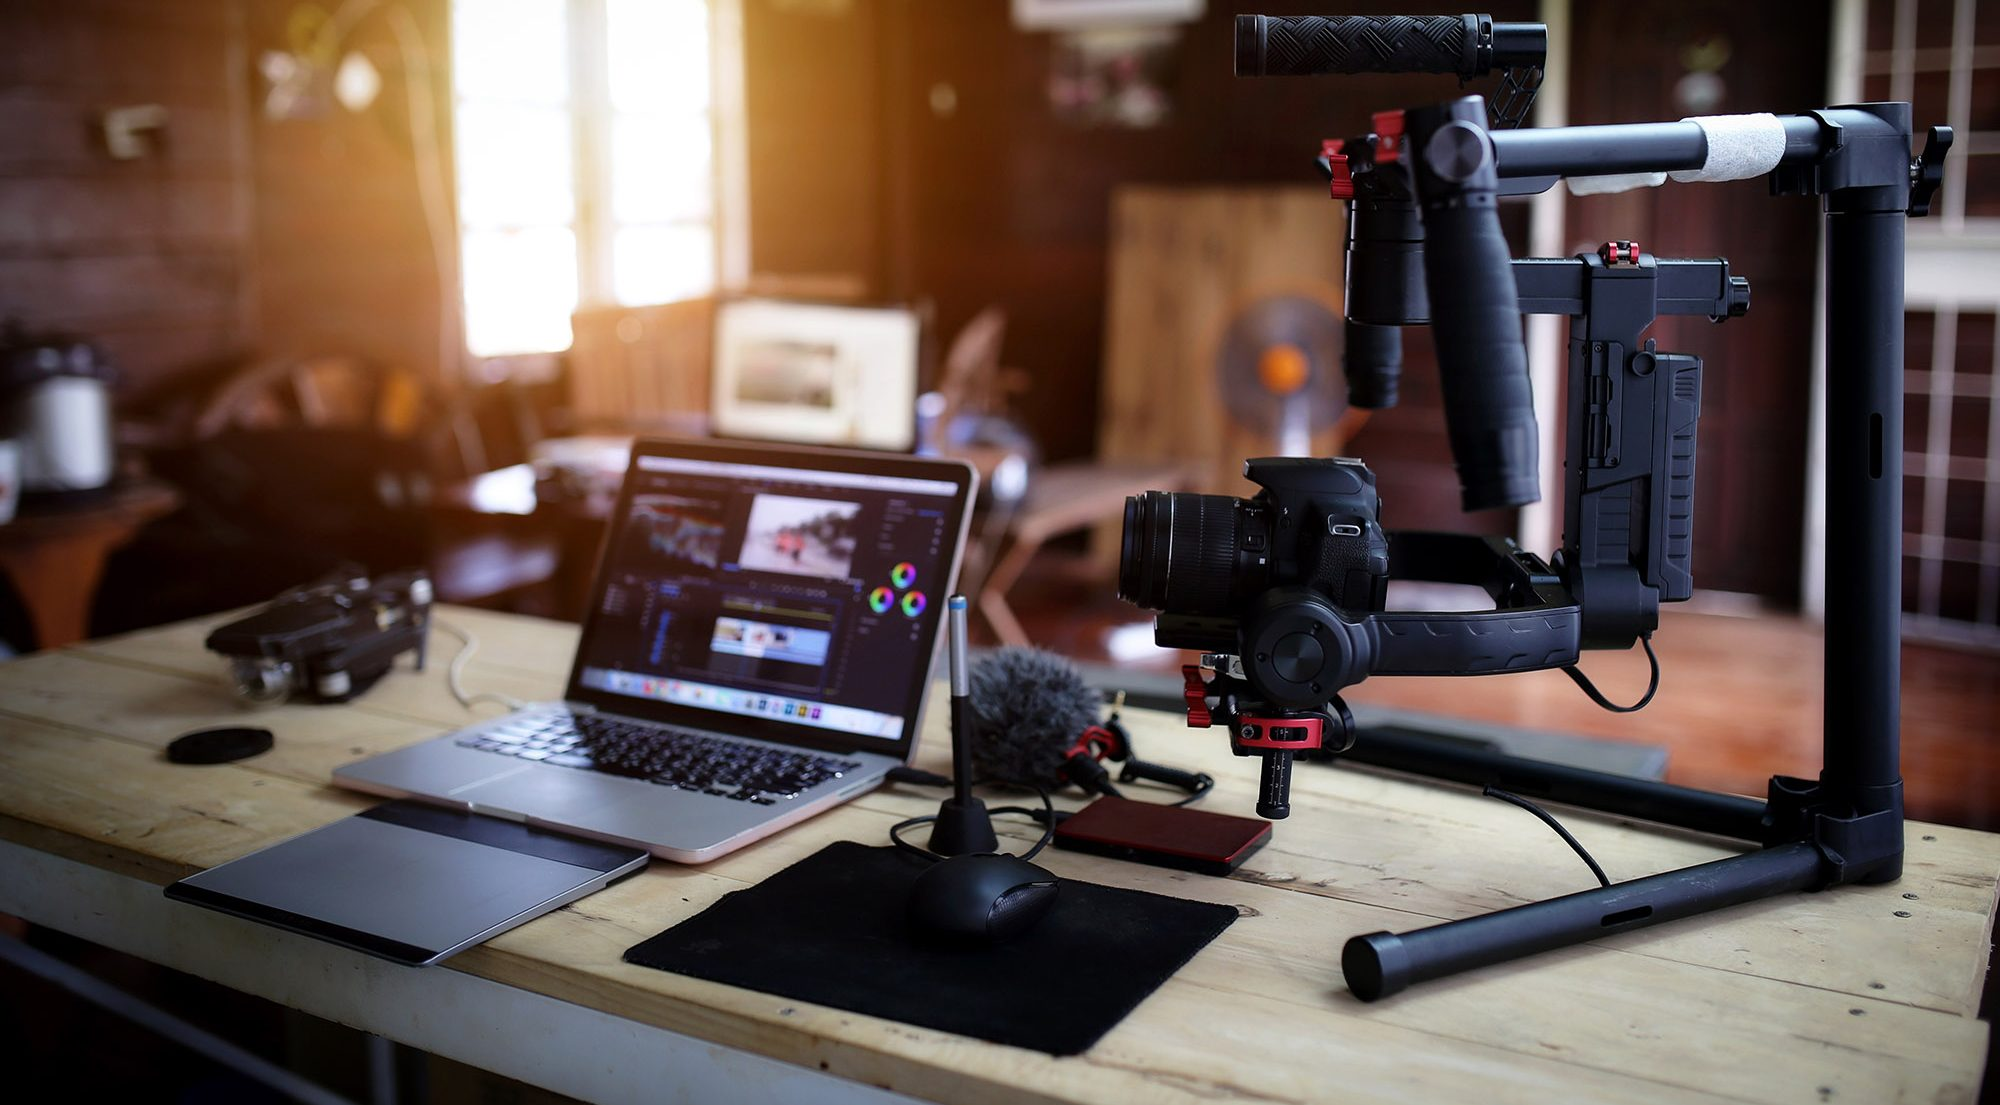 desk of videography equipment